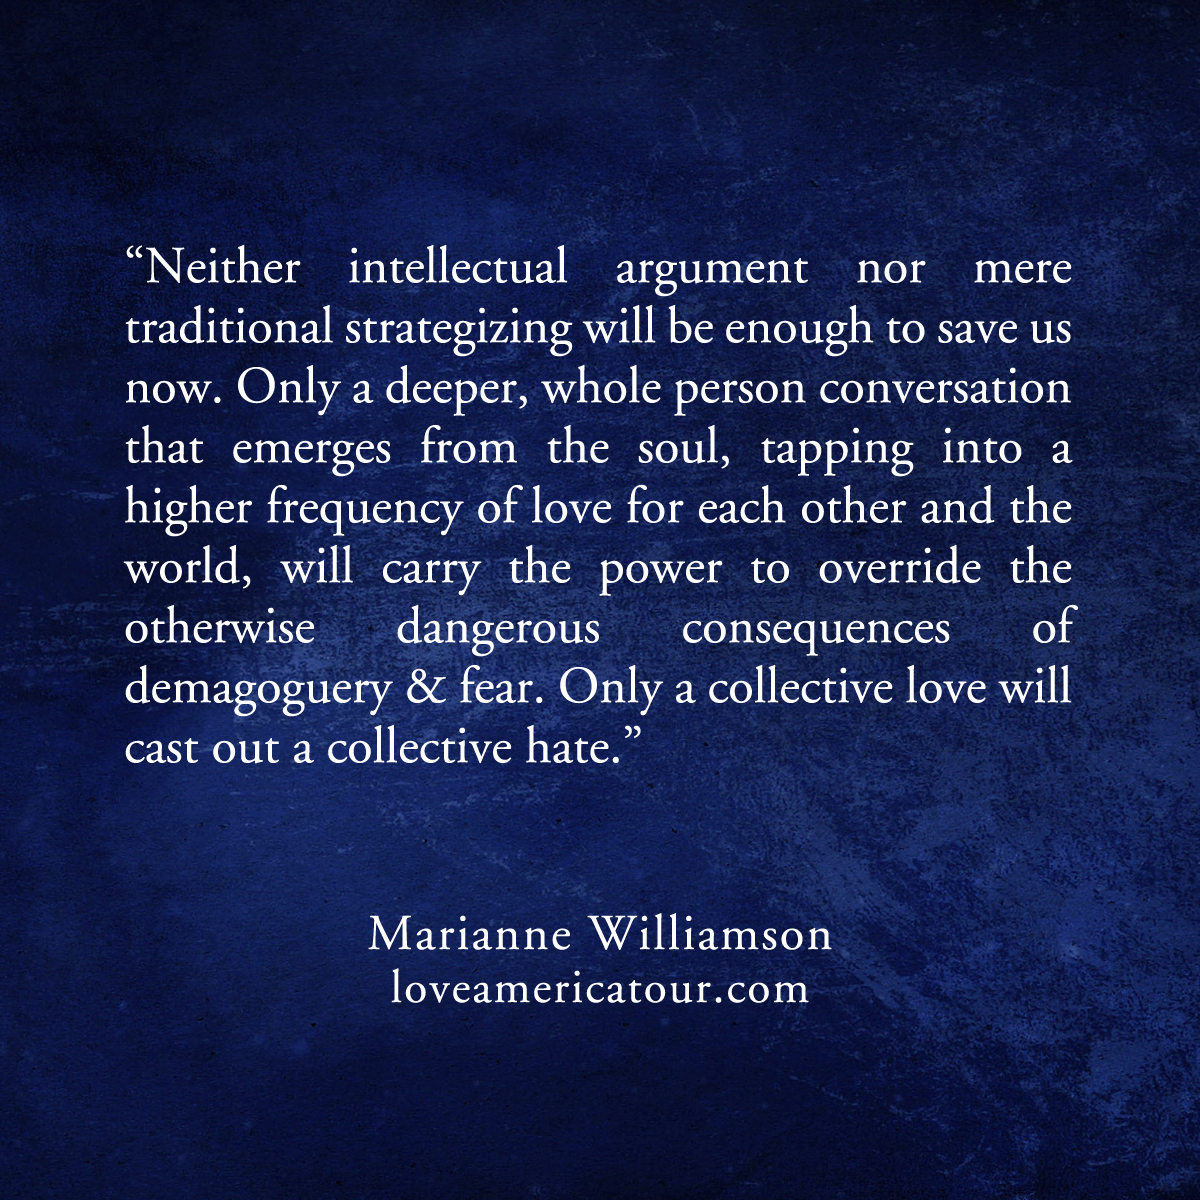 Marianne Williamson Quotes | Shareable Quotes By Marianne Williamson Marianne Williamson